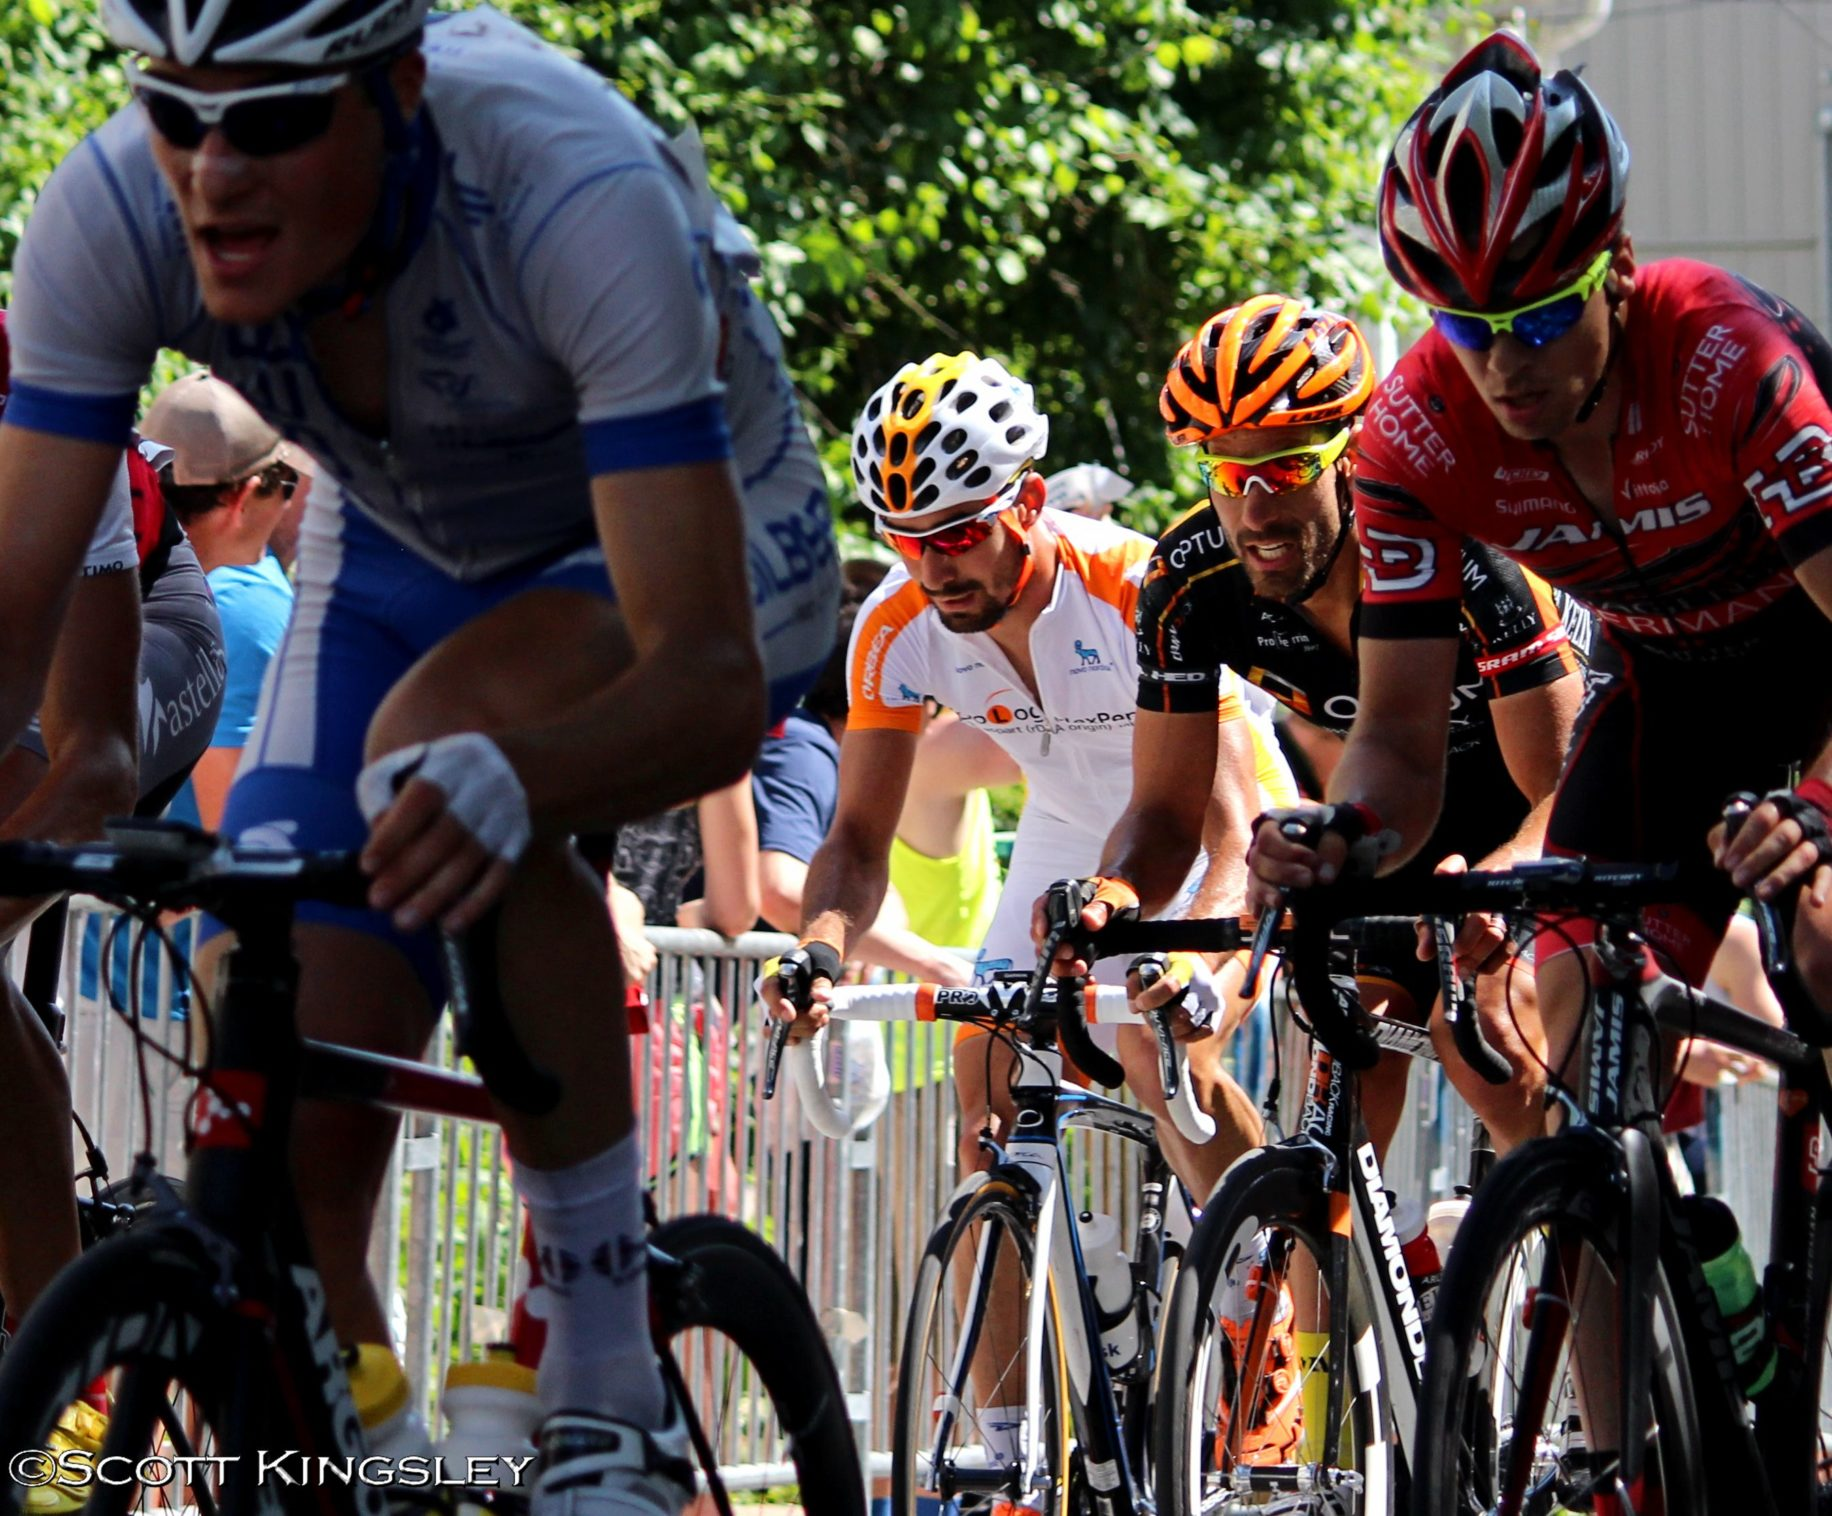 Parx casino philly cycling classic 2018